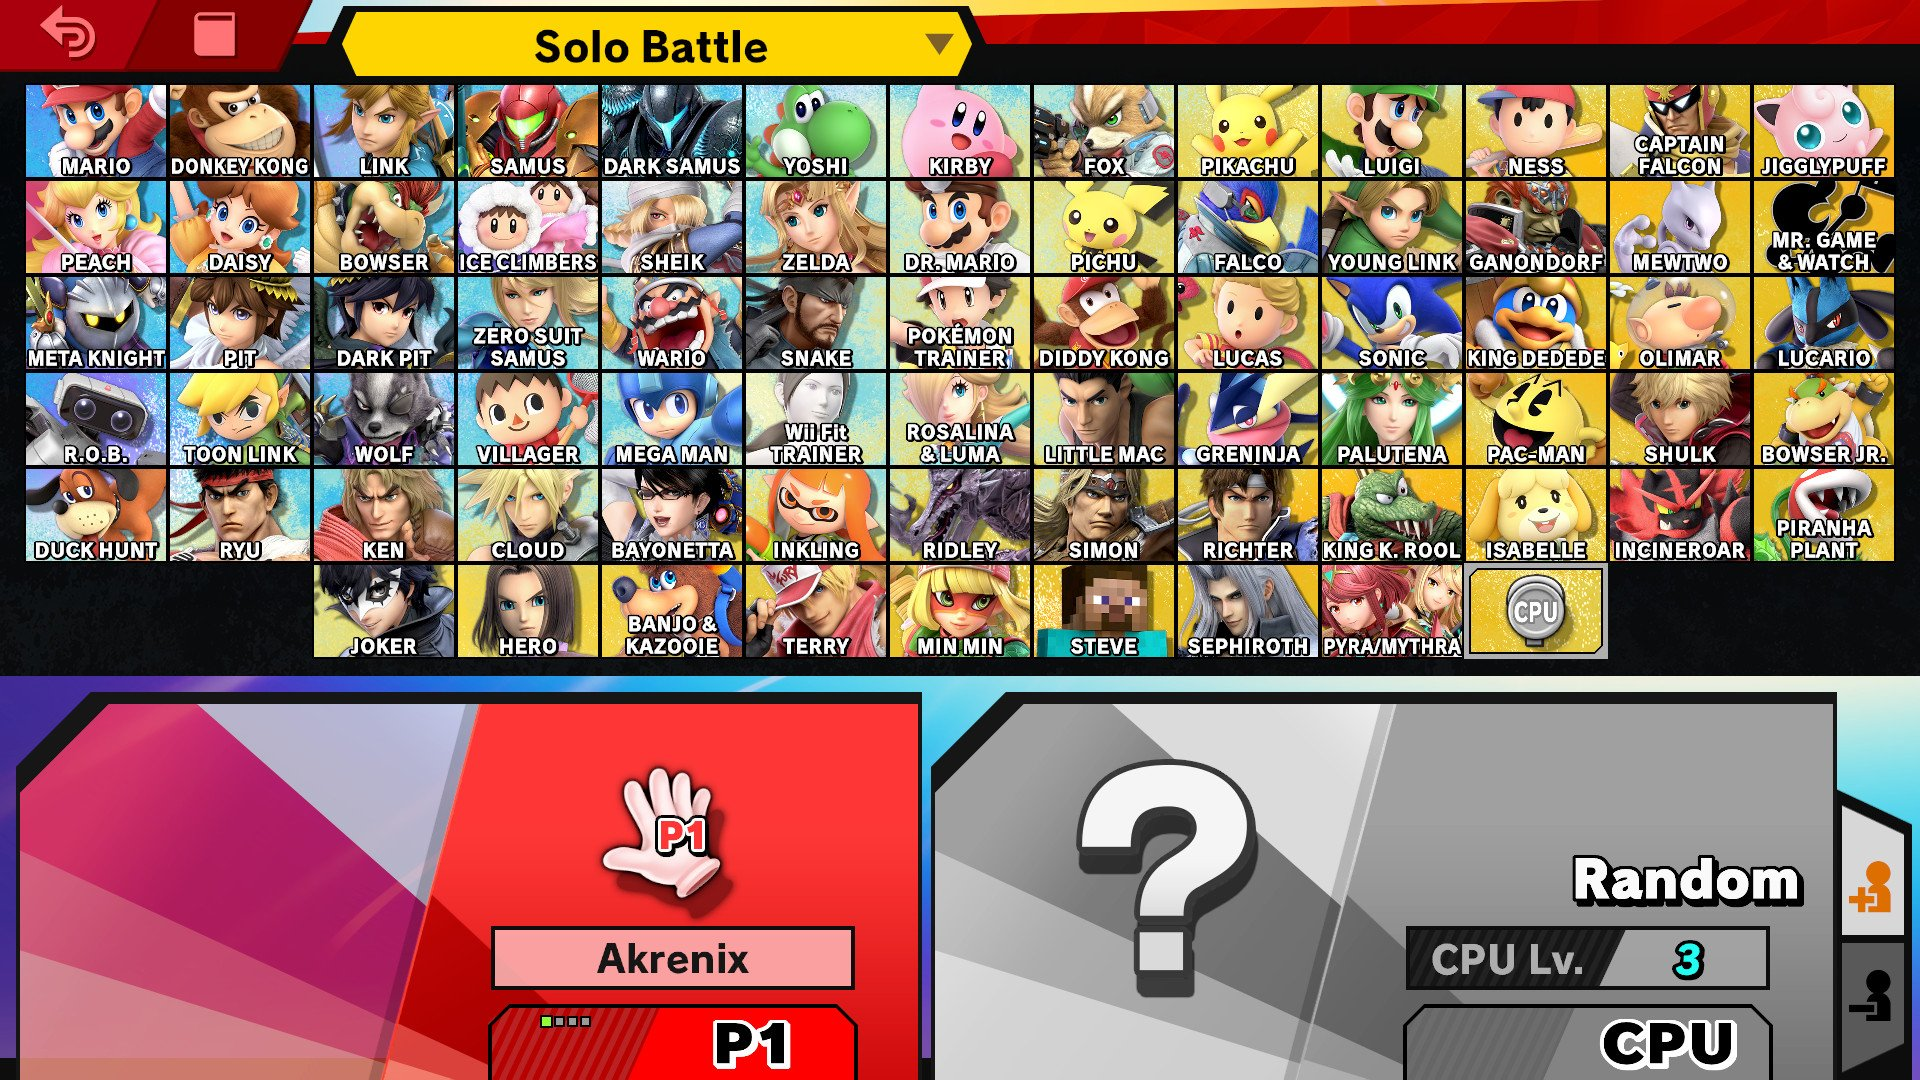 (Update) A modder created a way to take Fire Emblem out of Super Smash Bros. Ultimate screenshot